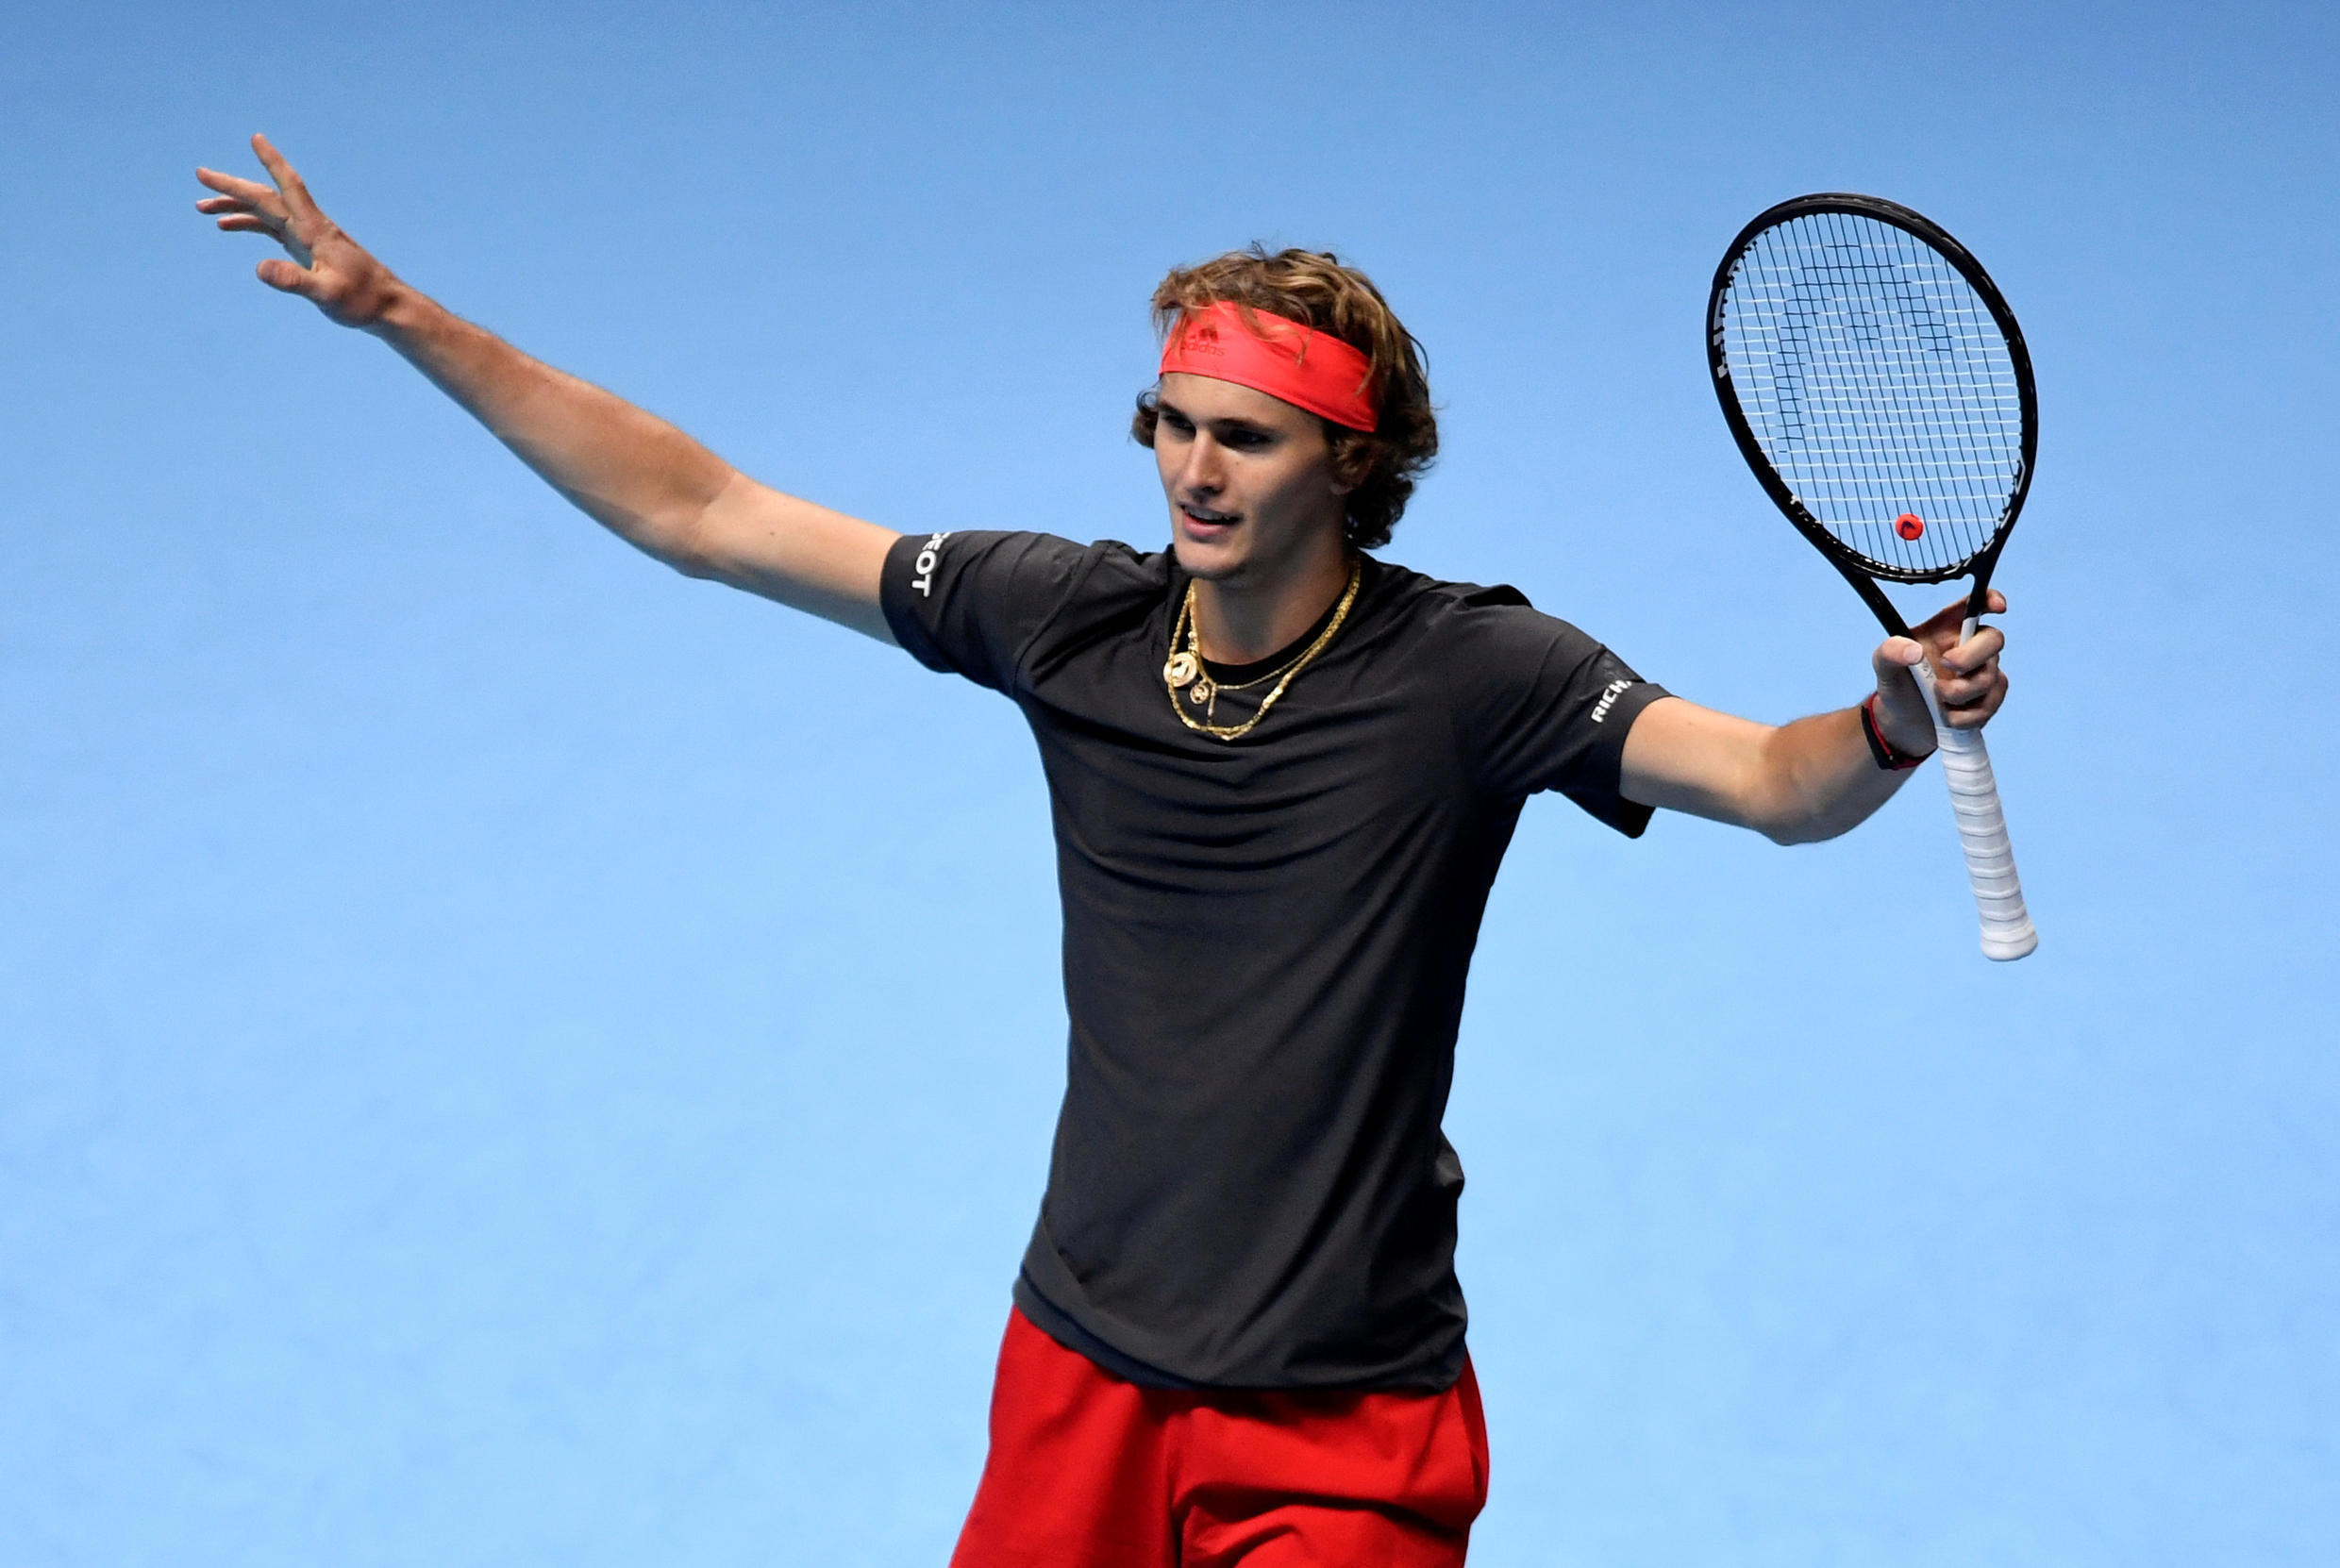 Alex Zverev became the youngest man to reach the last four at the end of season championships since 2009.